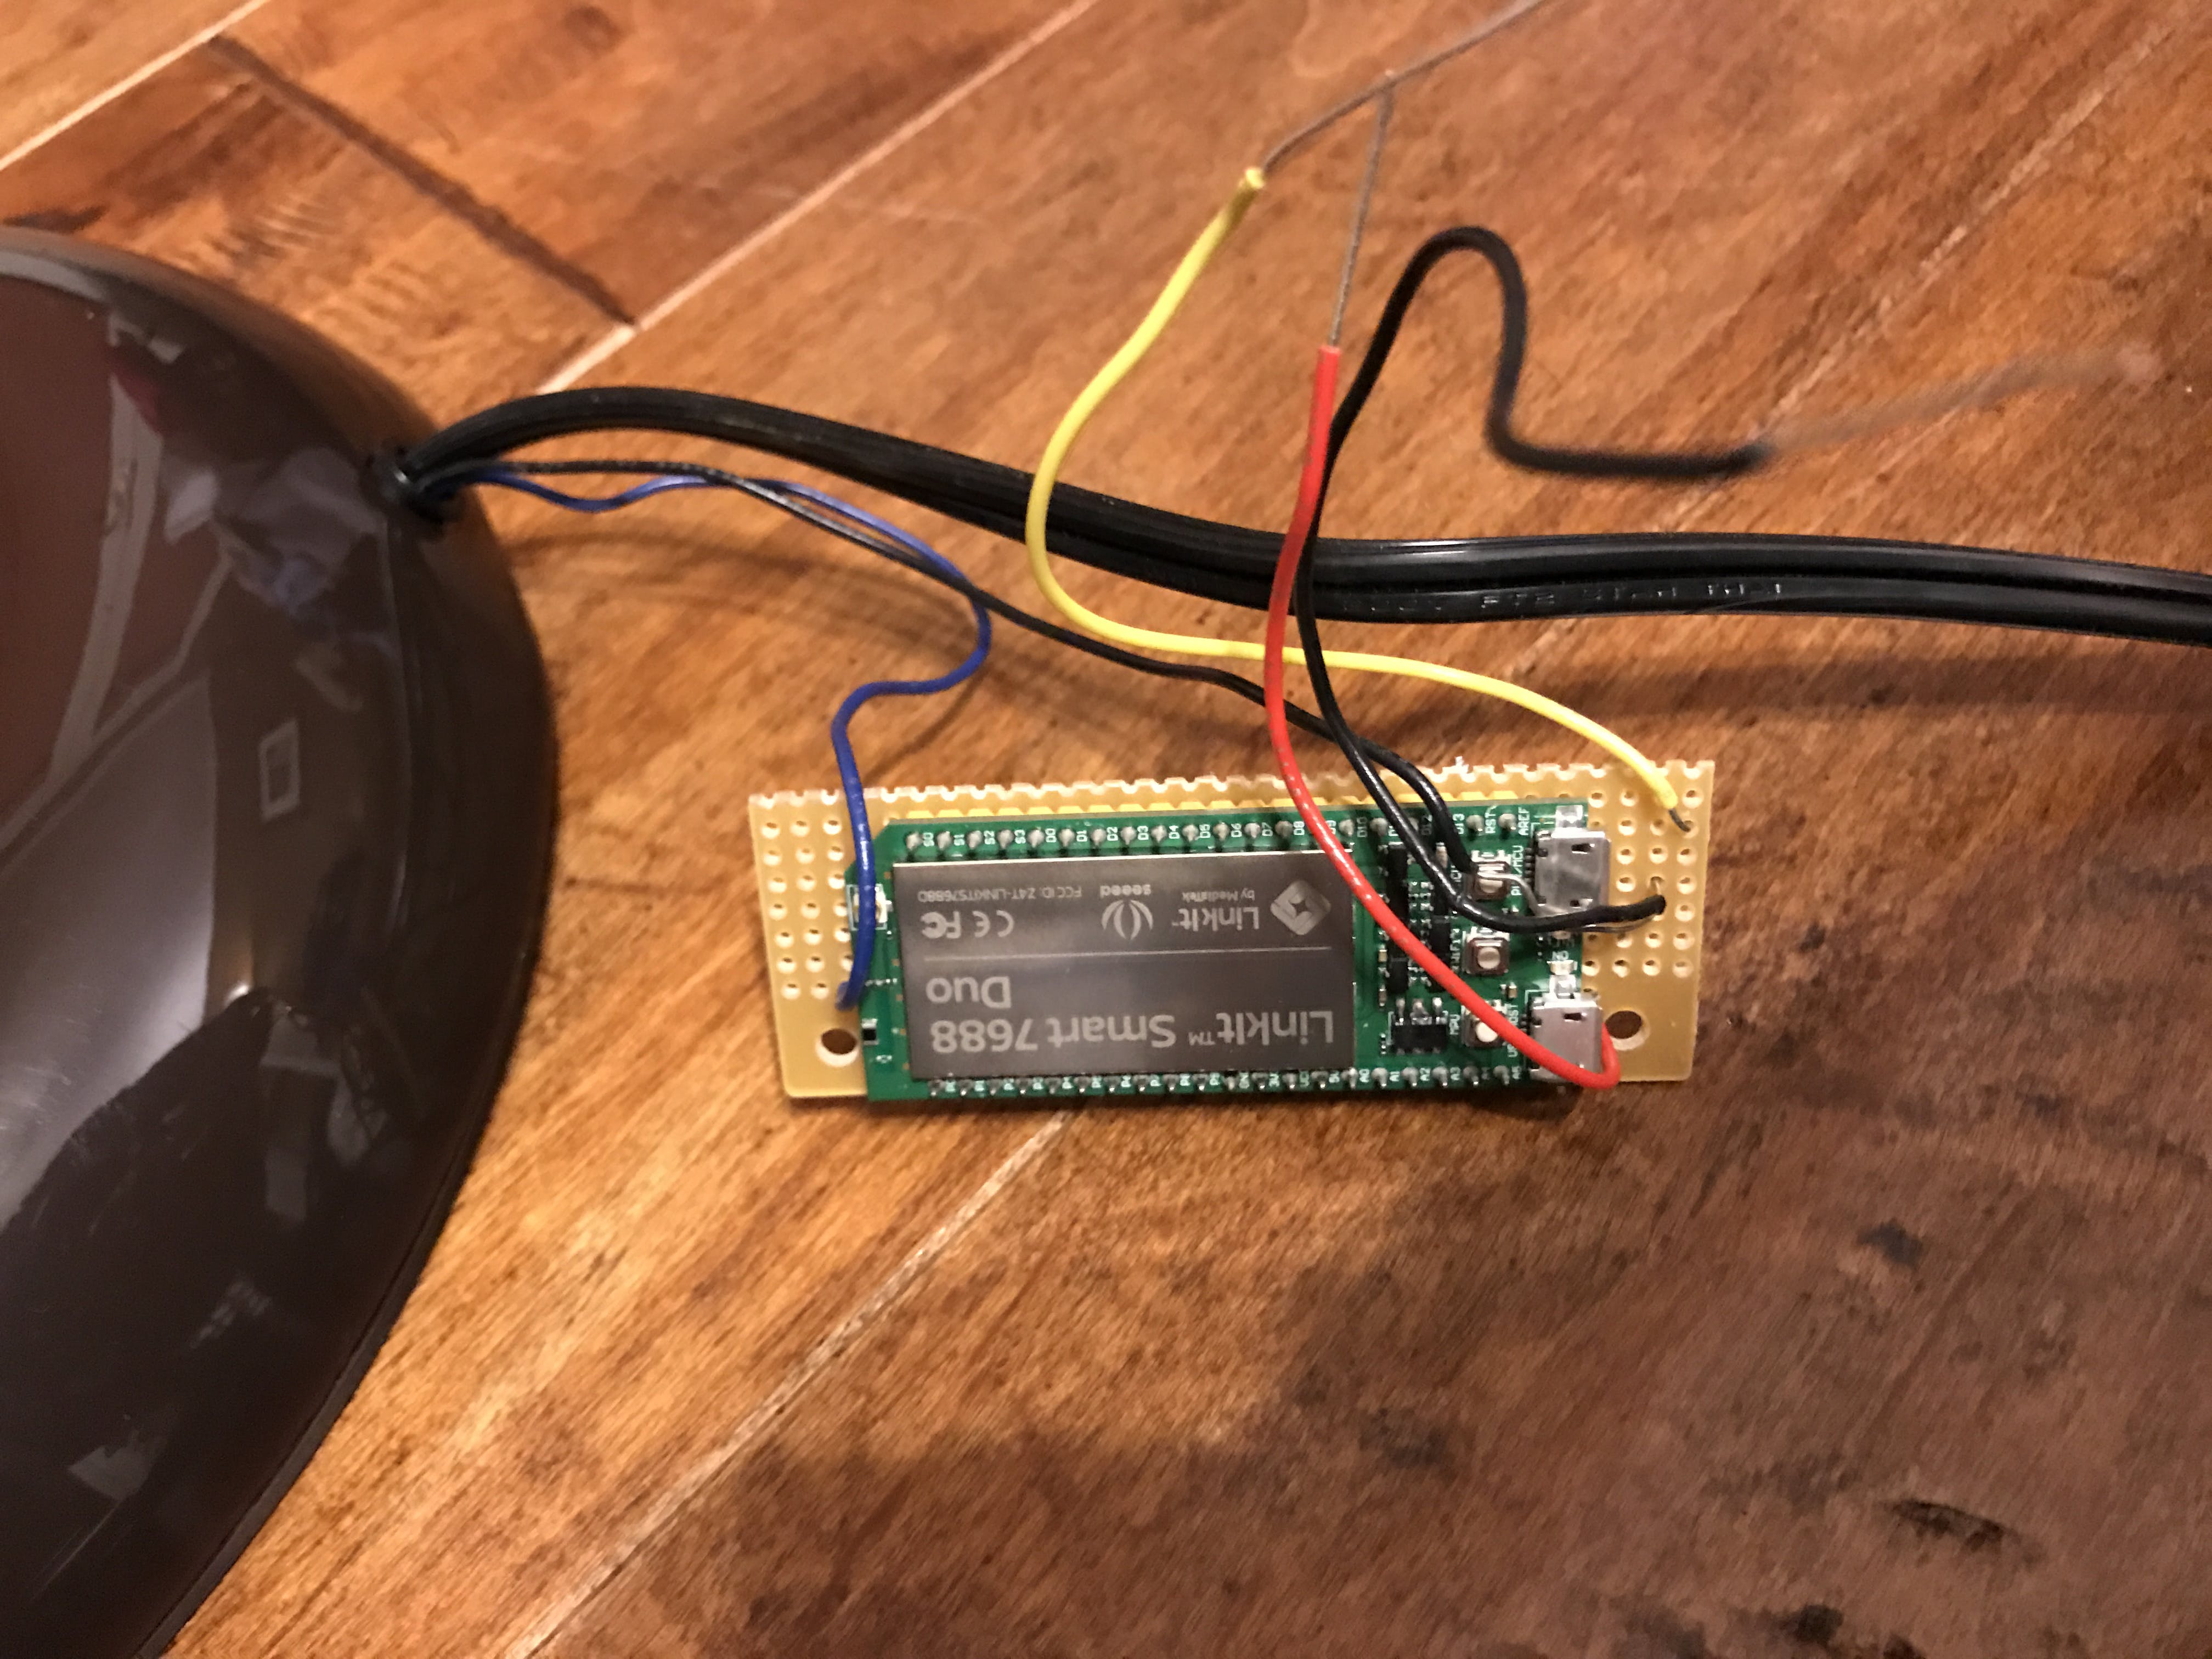 The black and blue wires from the switch were snaked through the lamp pole and connect to the Linkit and the base.